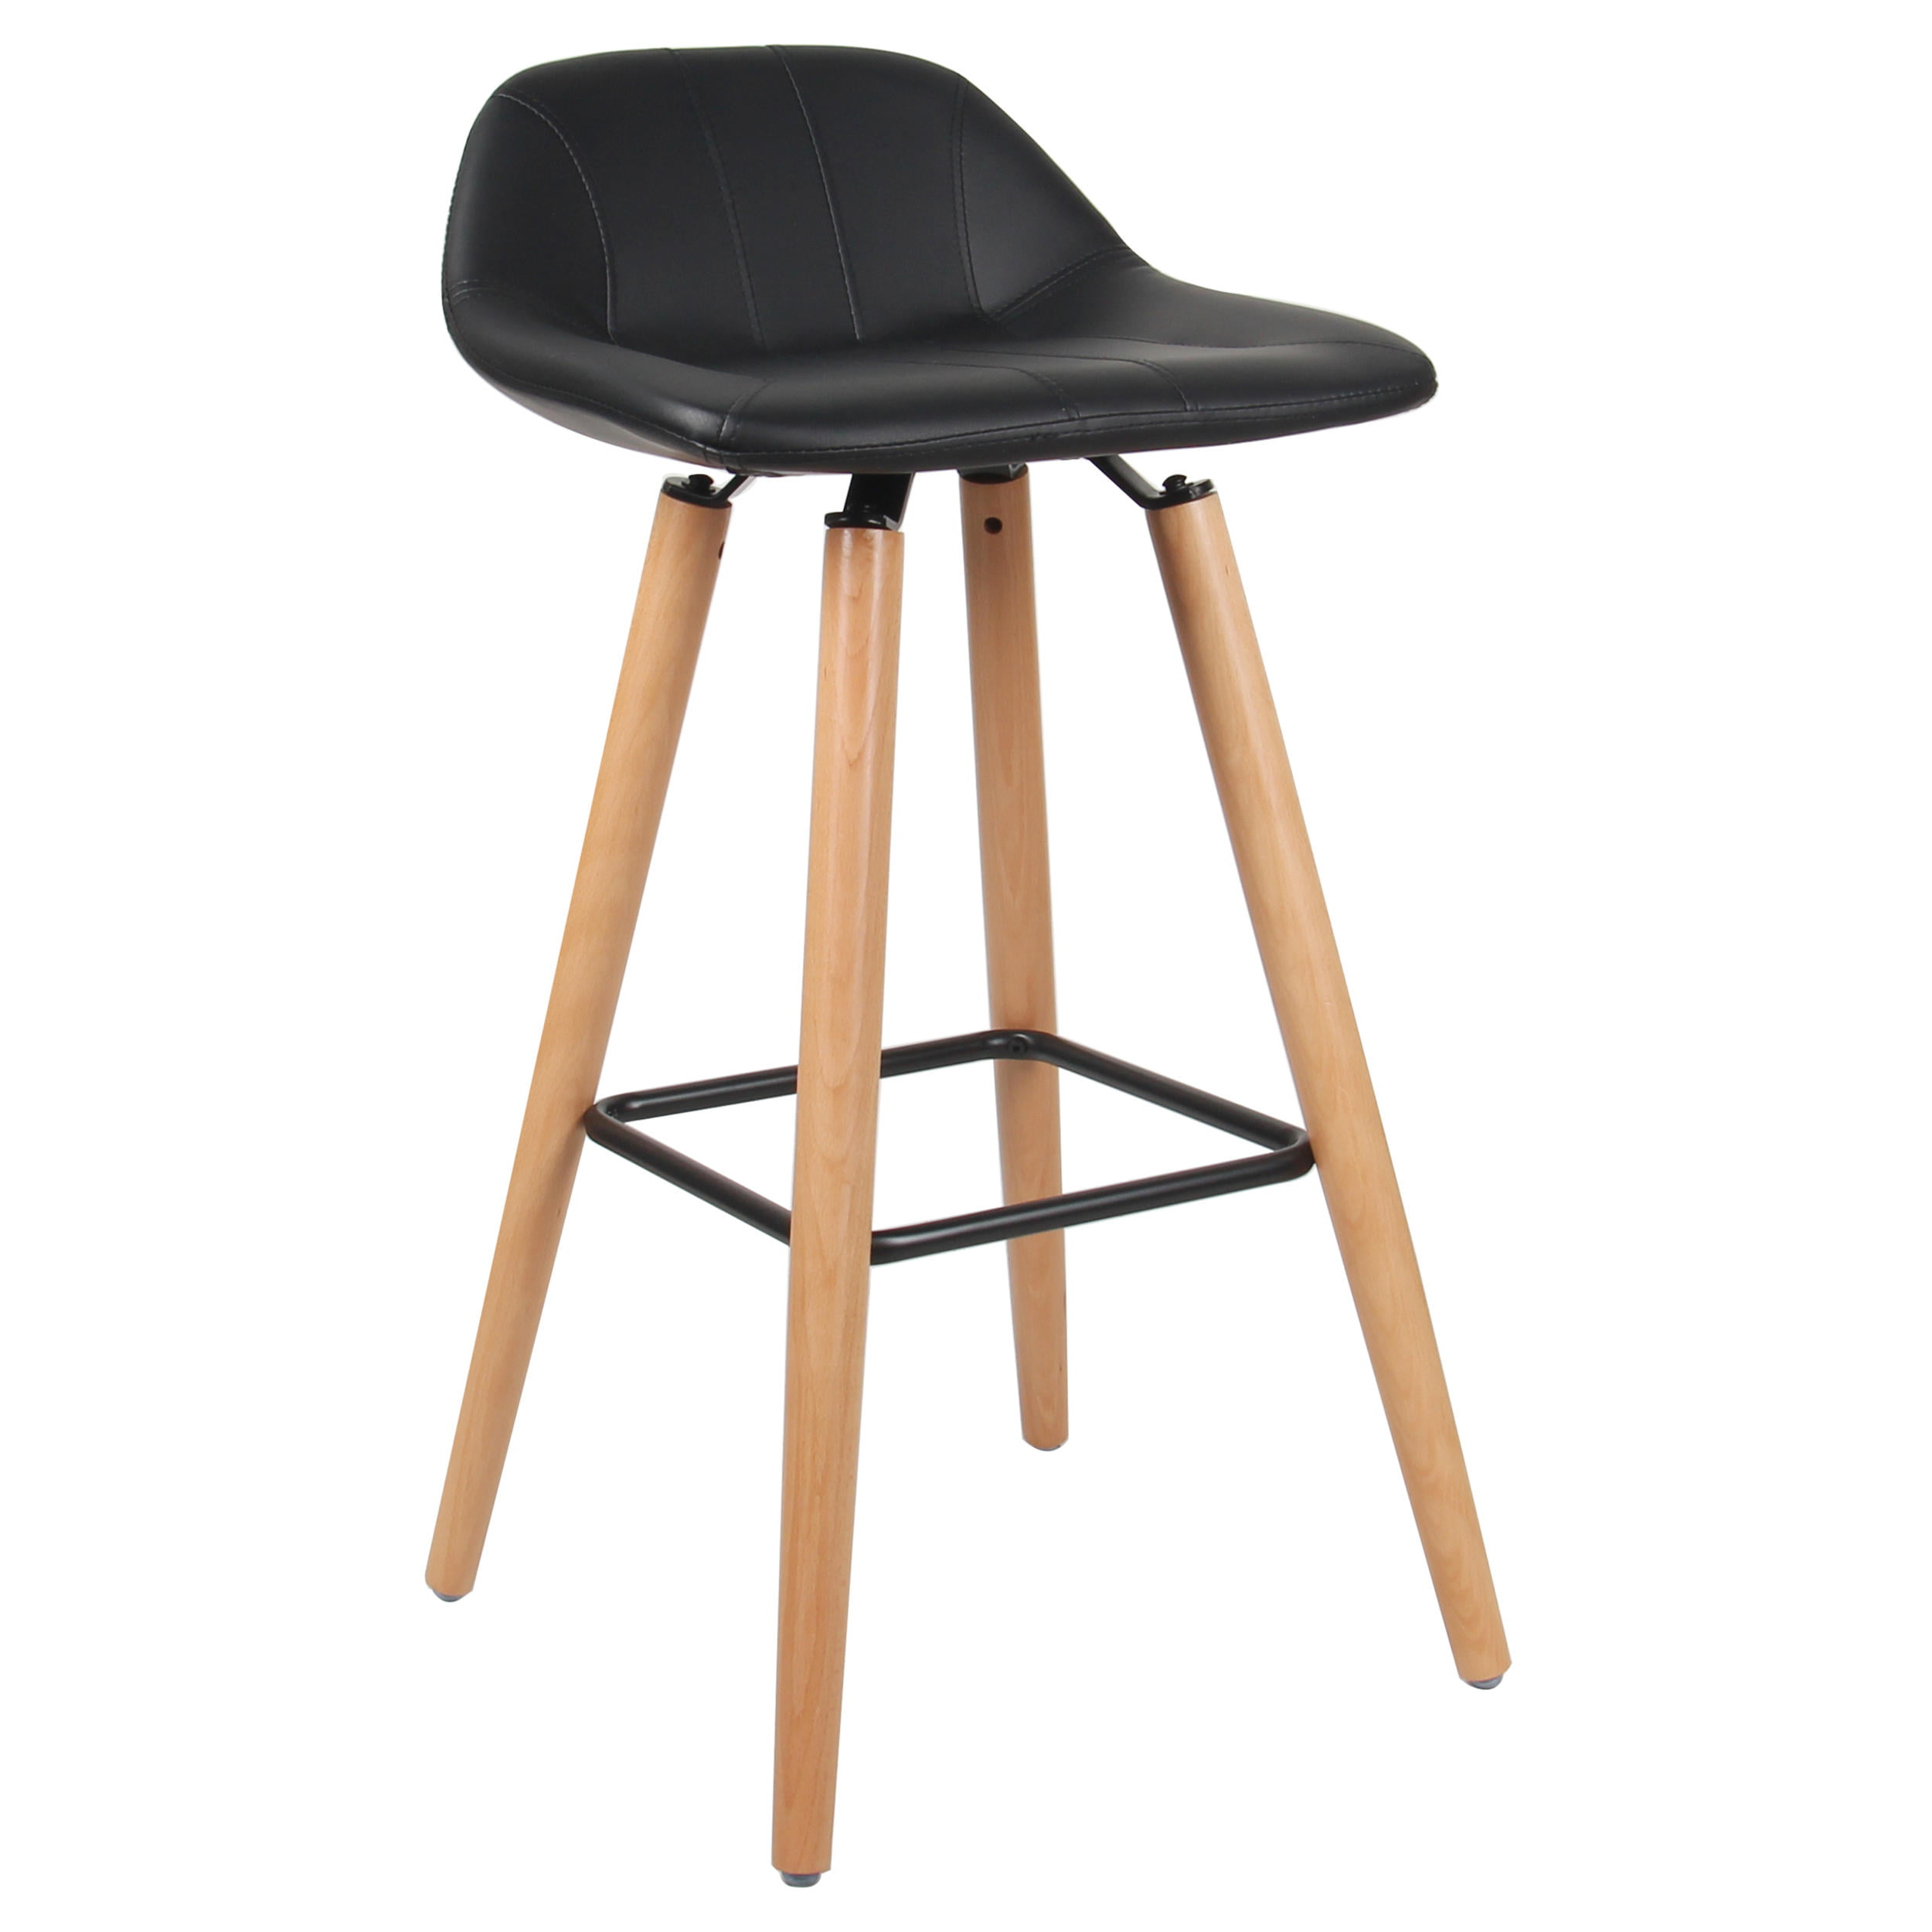 Moustache Dining Room Chair Bar Cafe Stool with Padded Seat, Footrest &  Beech Wood Legs